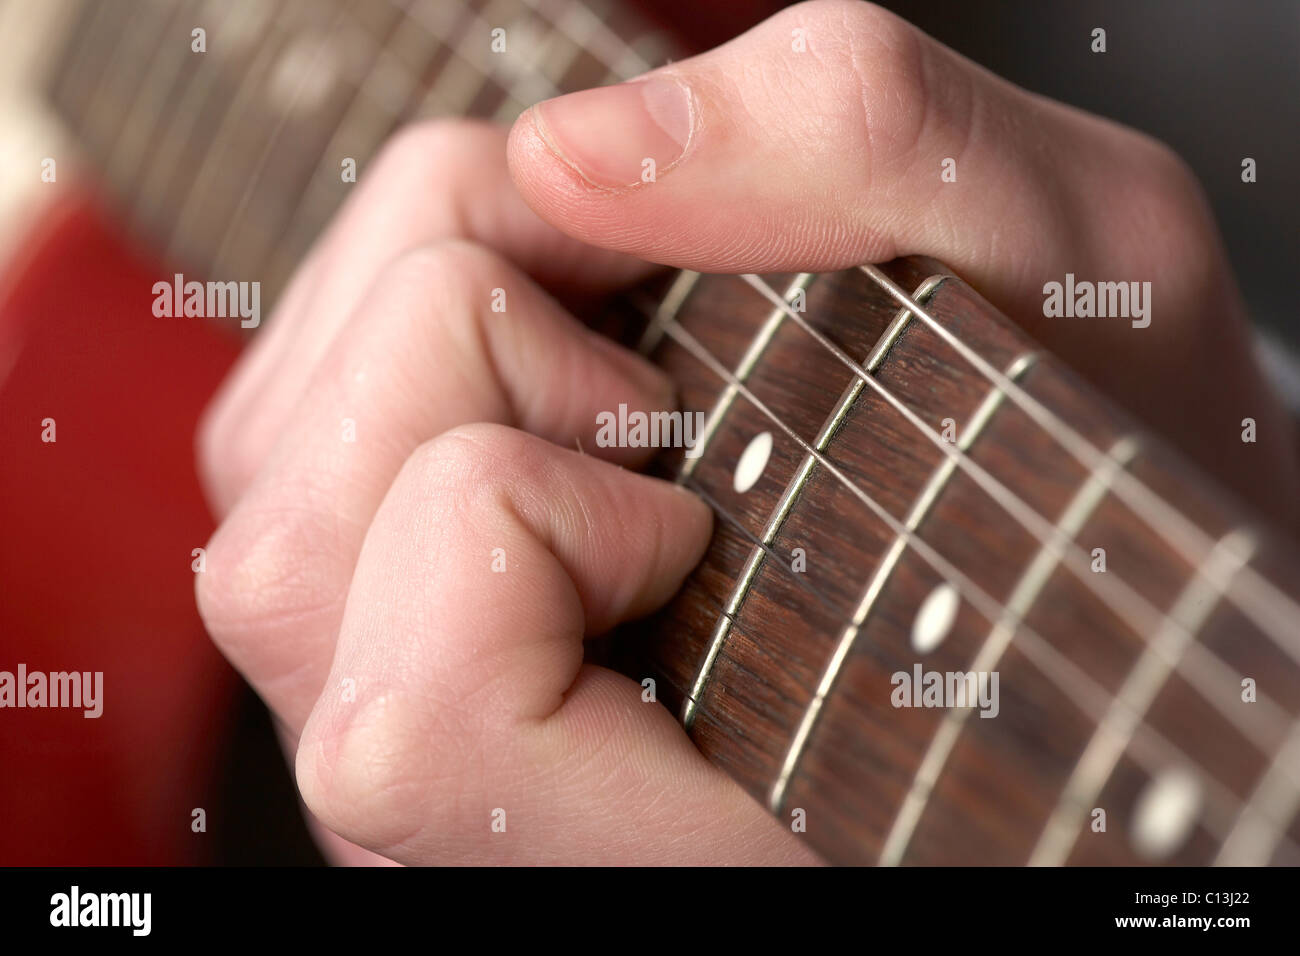 Playing Electric Guitar Looking Down The Neck With Hand Holding A